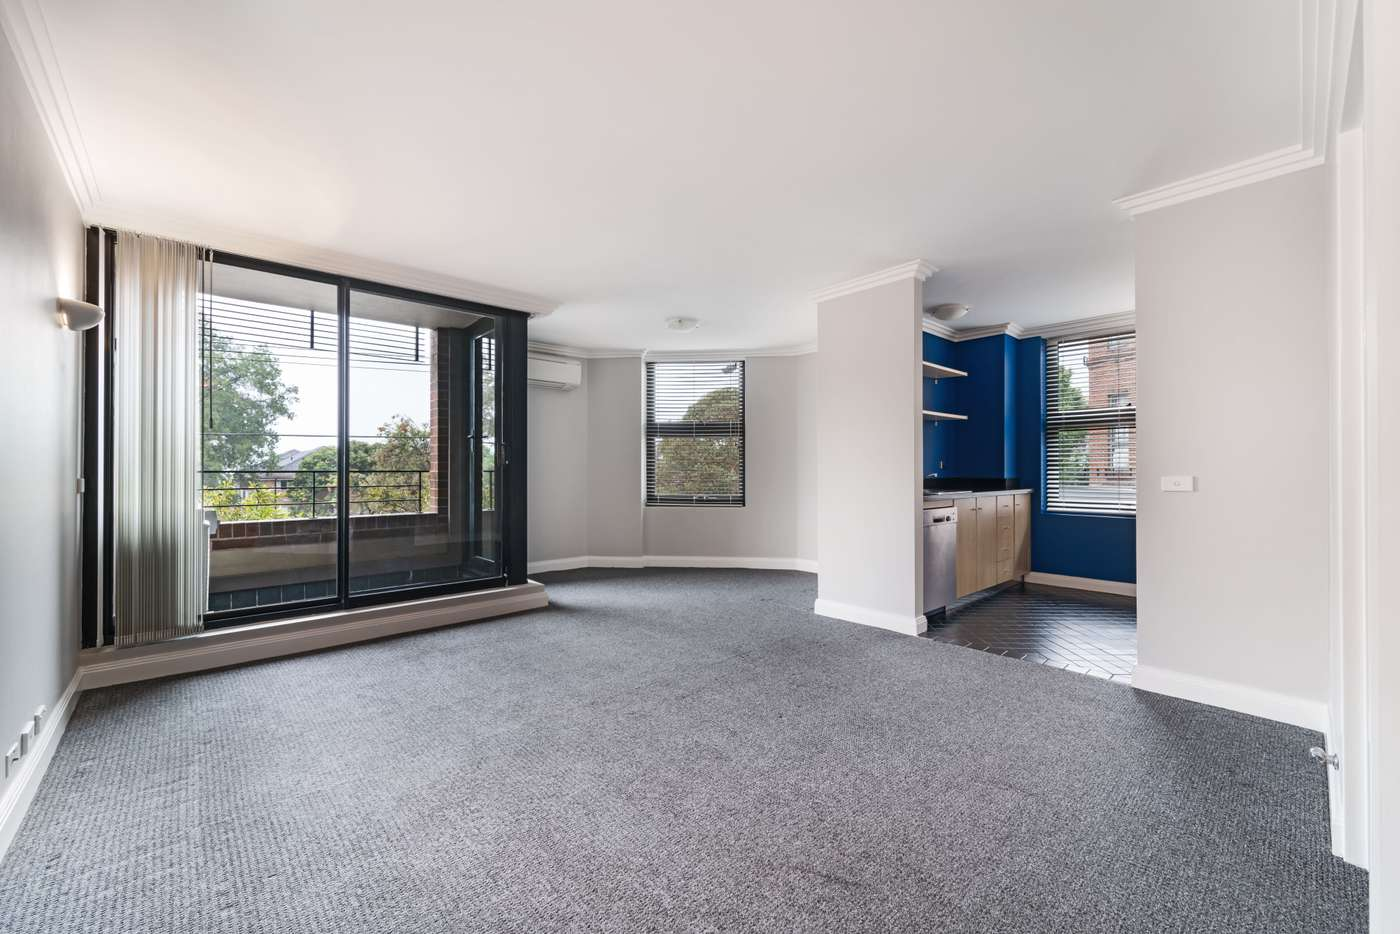 Main view of Homely apartment listing, 105/2 Langley Avenue, Cremorne NSW 2090